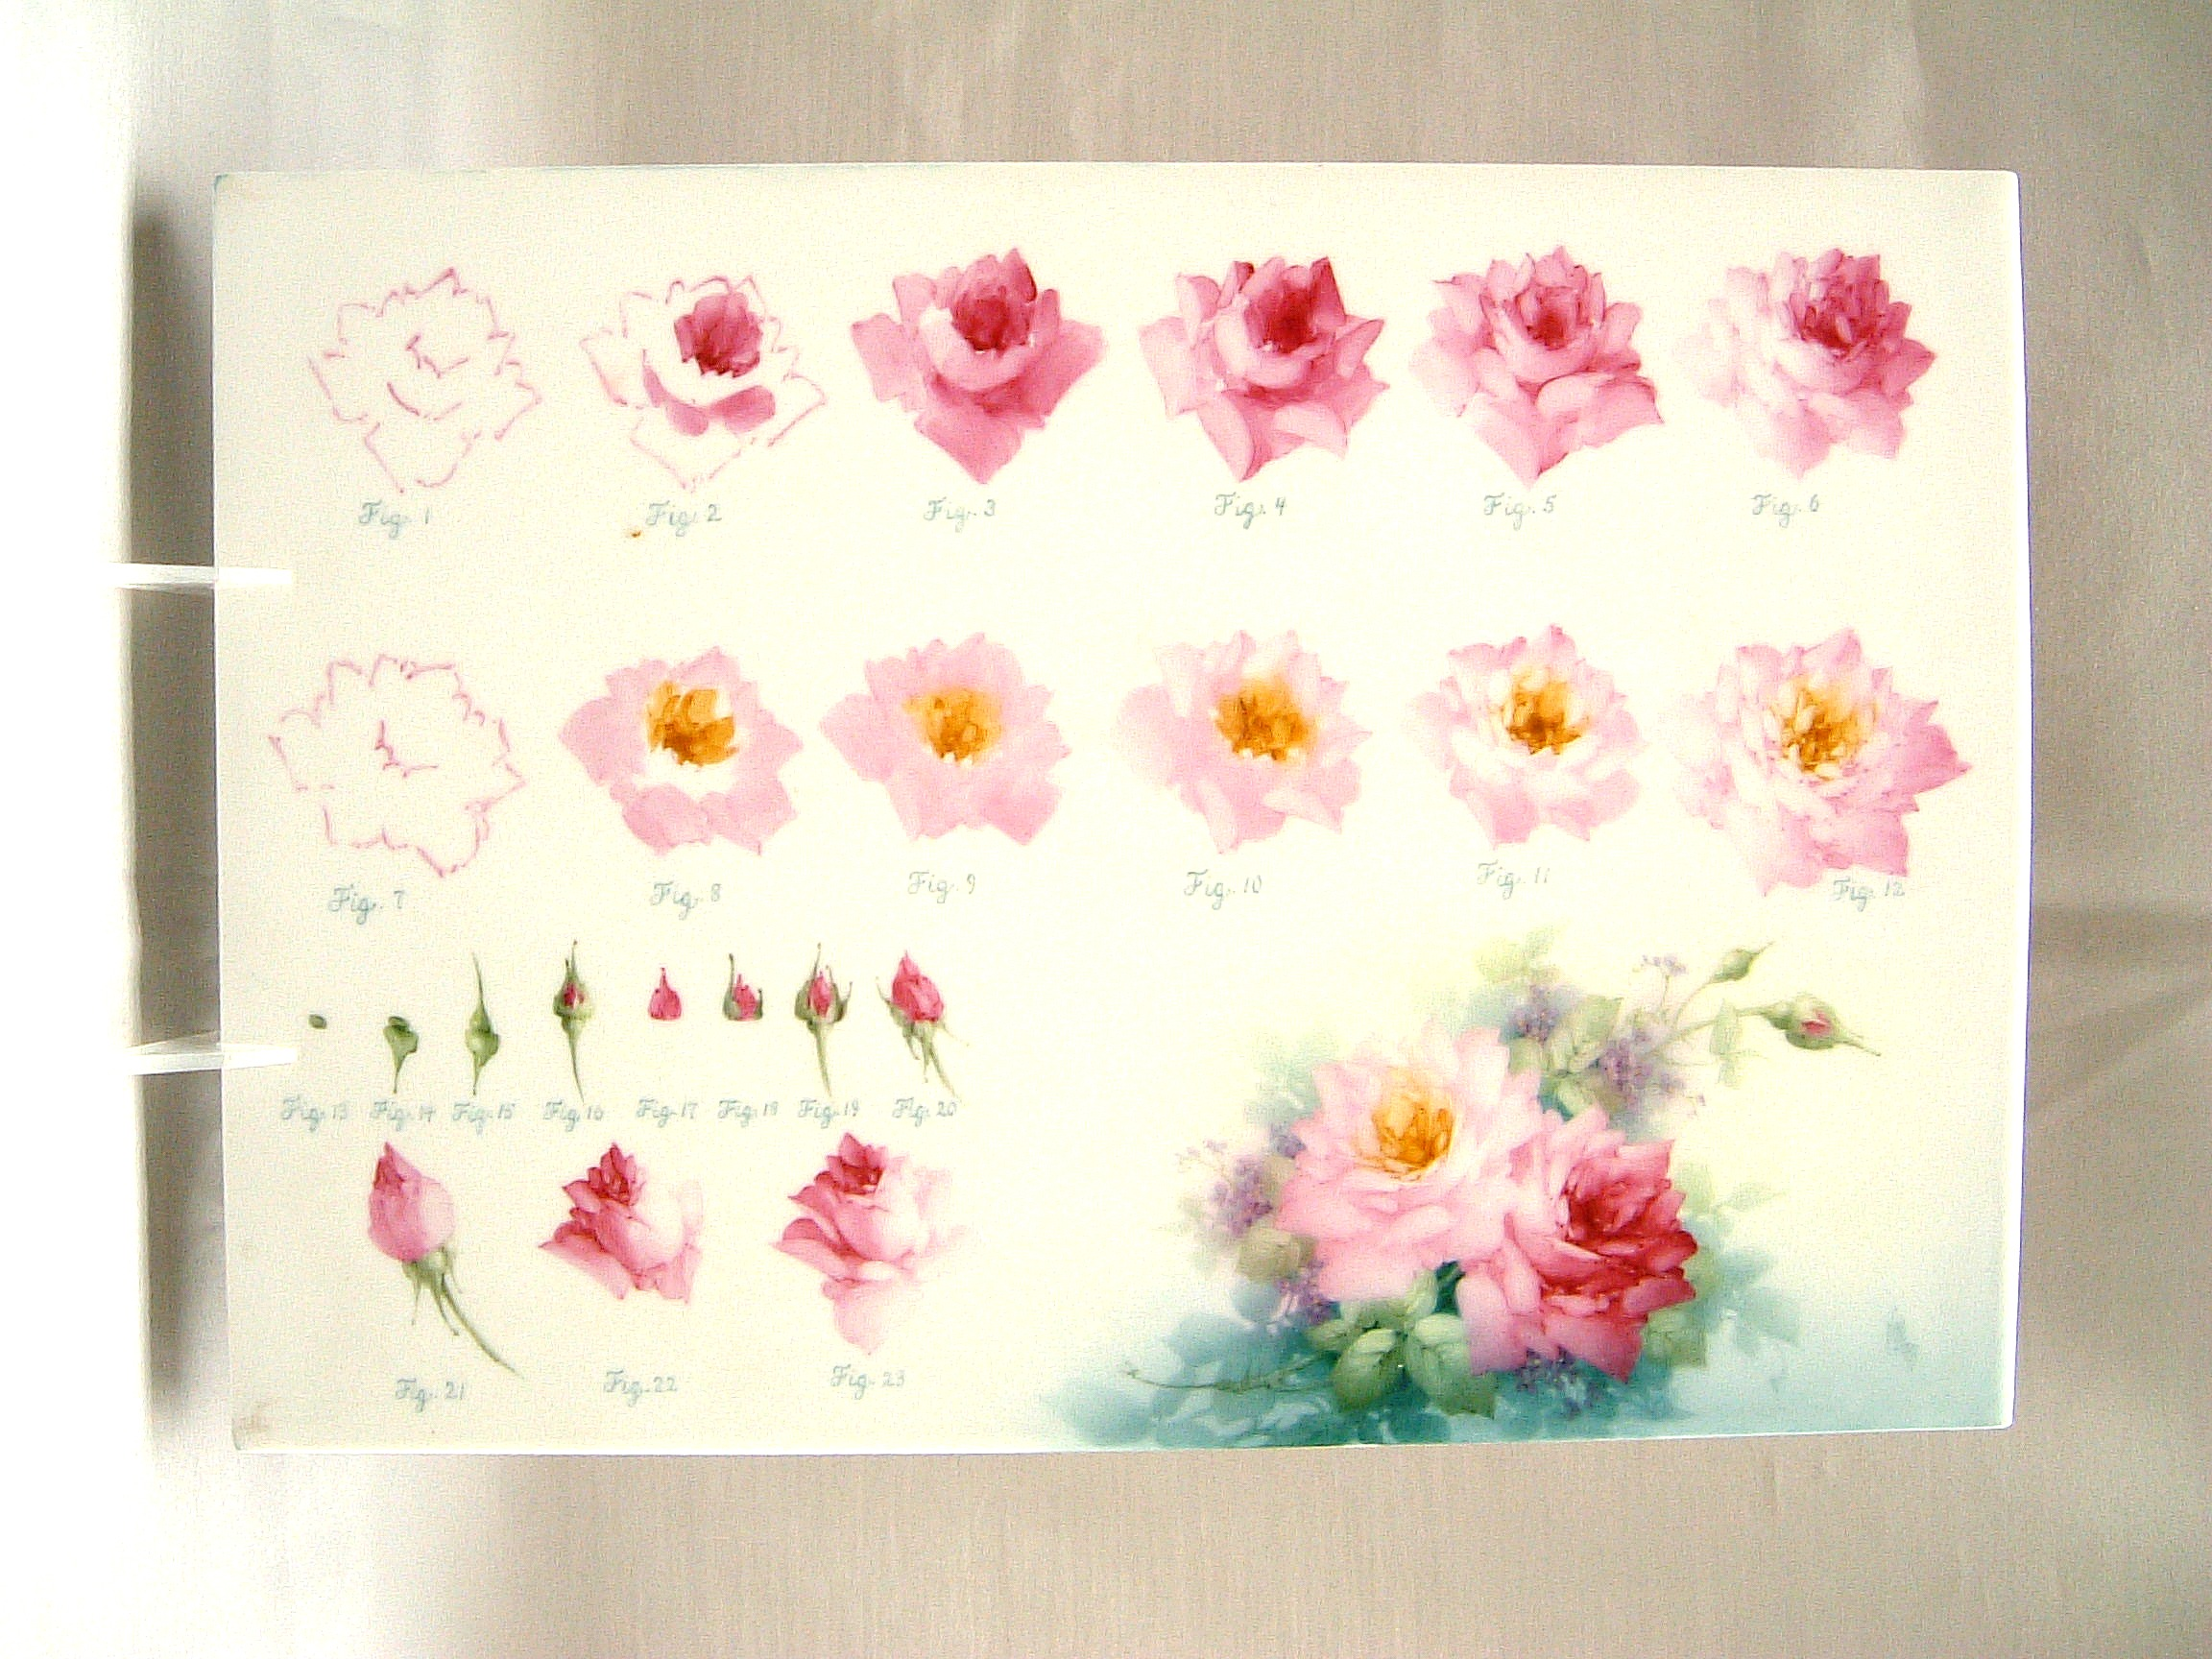 Paula collins studies for How to paint a rose in watercolor step by step